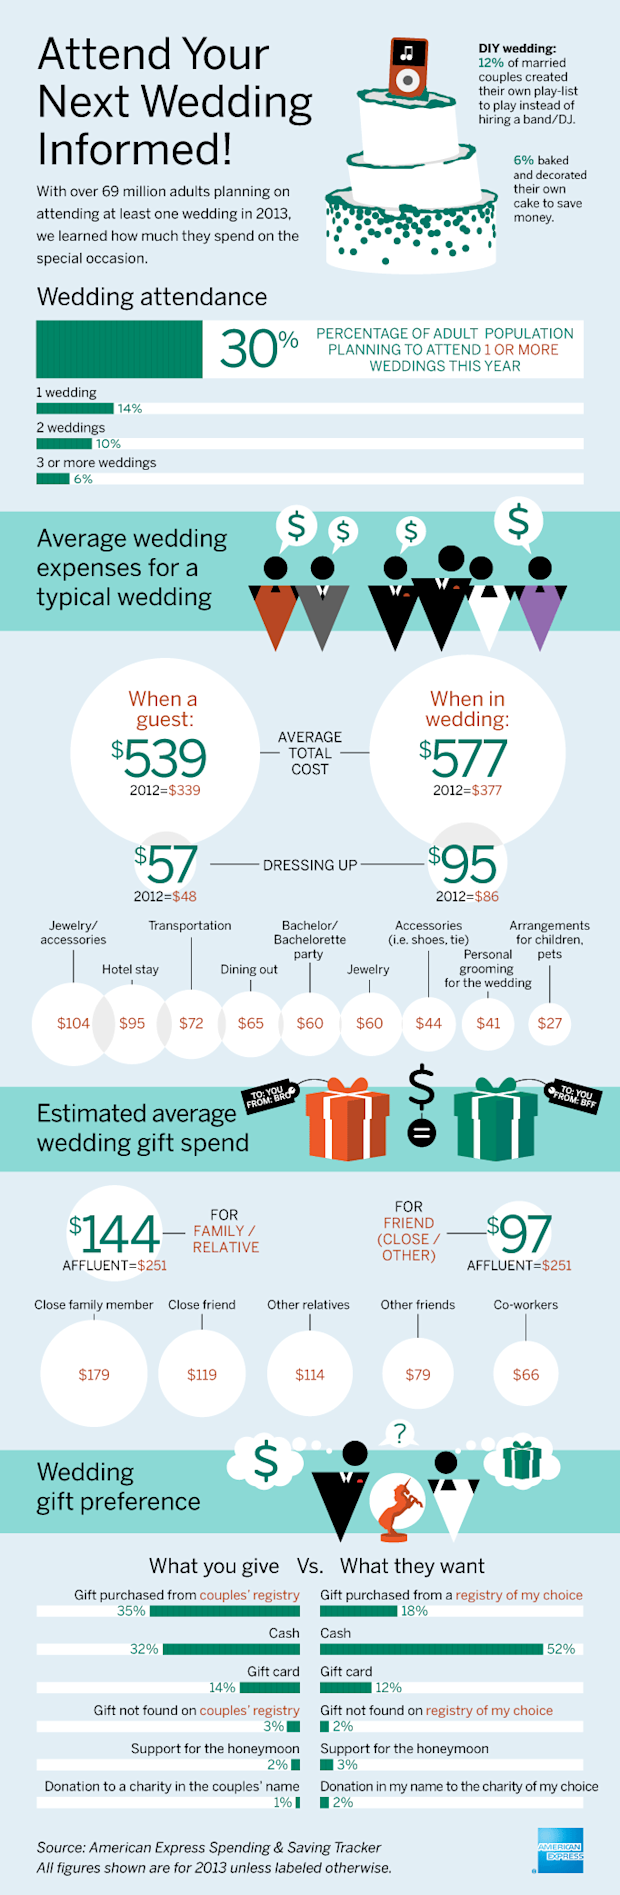 amex wedding infographic